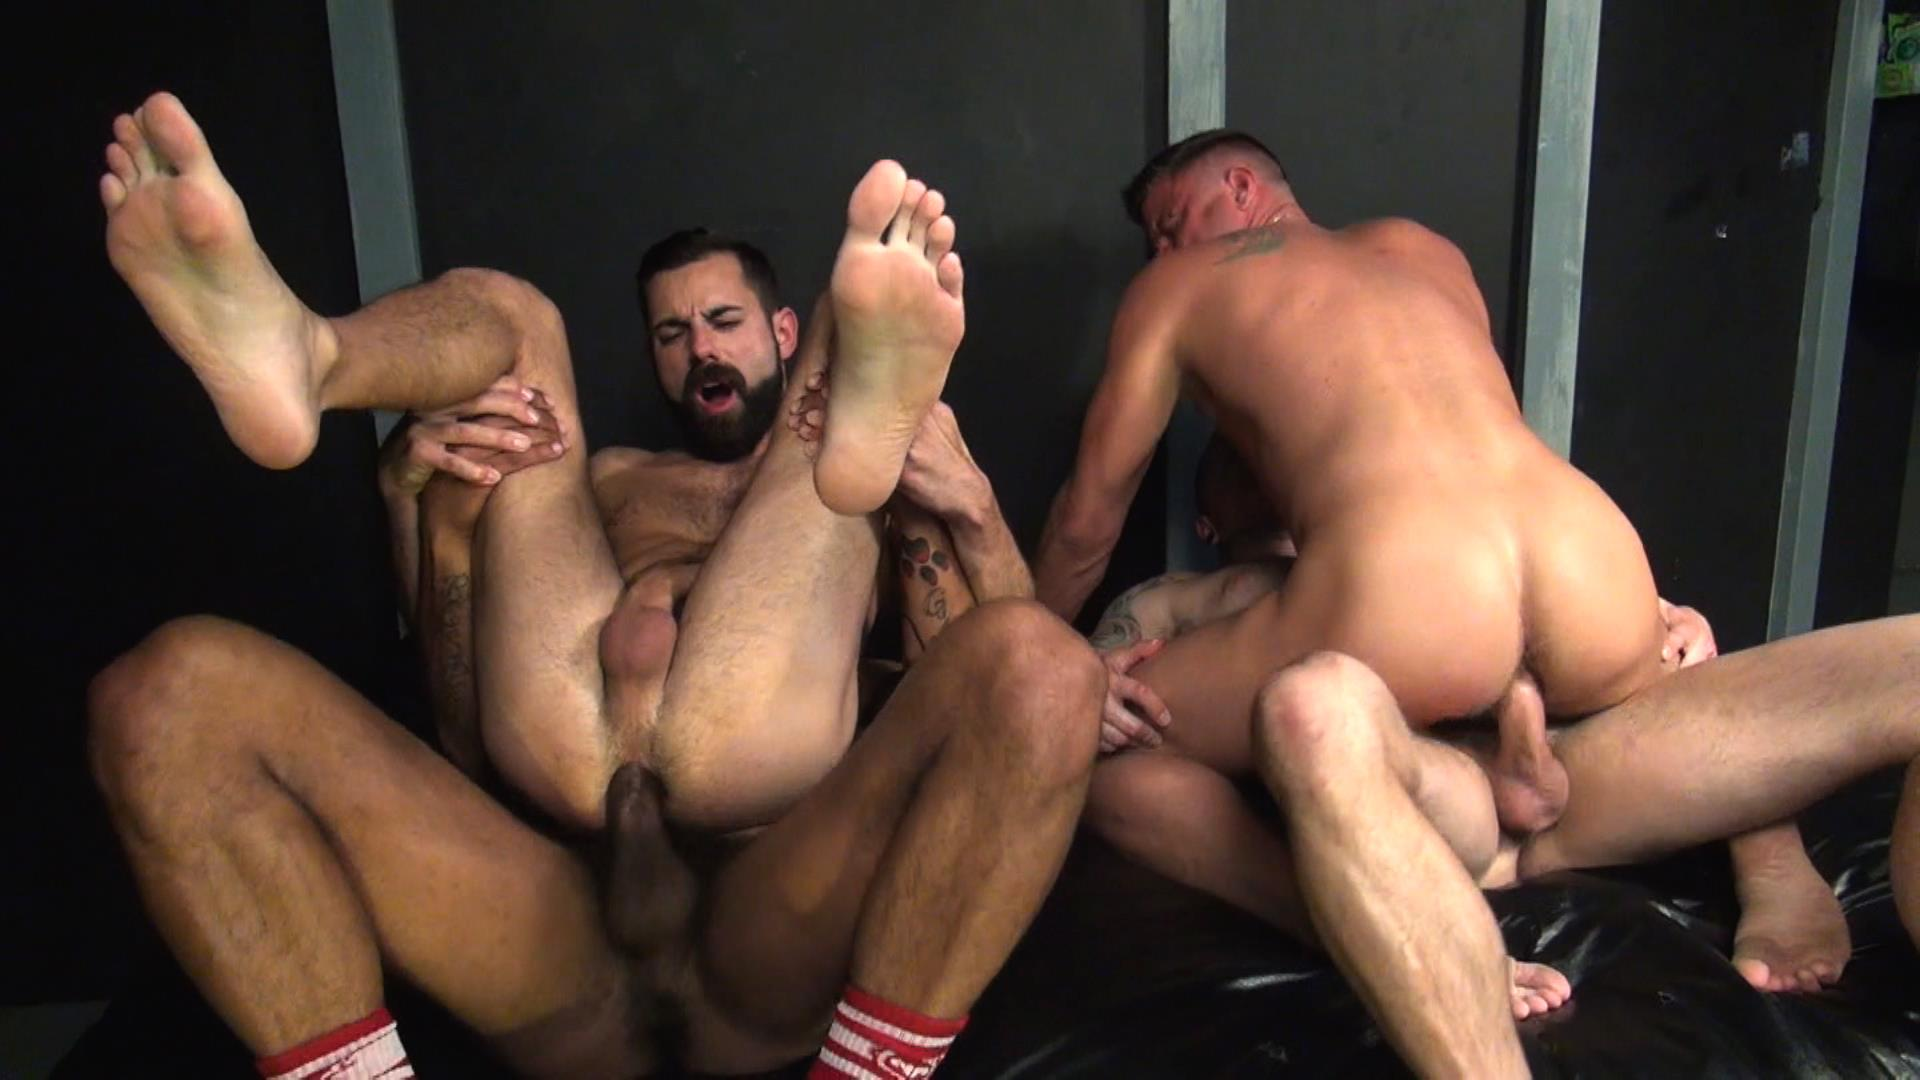 Raw Fuck Club Raw Fuck Club Max Cameron and Christian Matthews and Kory Mitchel and Dean Brody Bareback Bathhouse Amateur Gay Porn 8 Four Way Bareback Fucking And Cum Fest At The Bathhouse